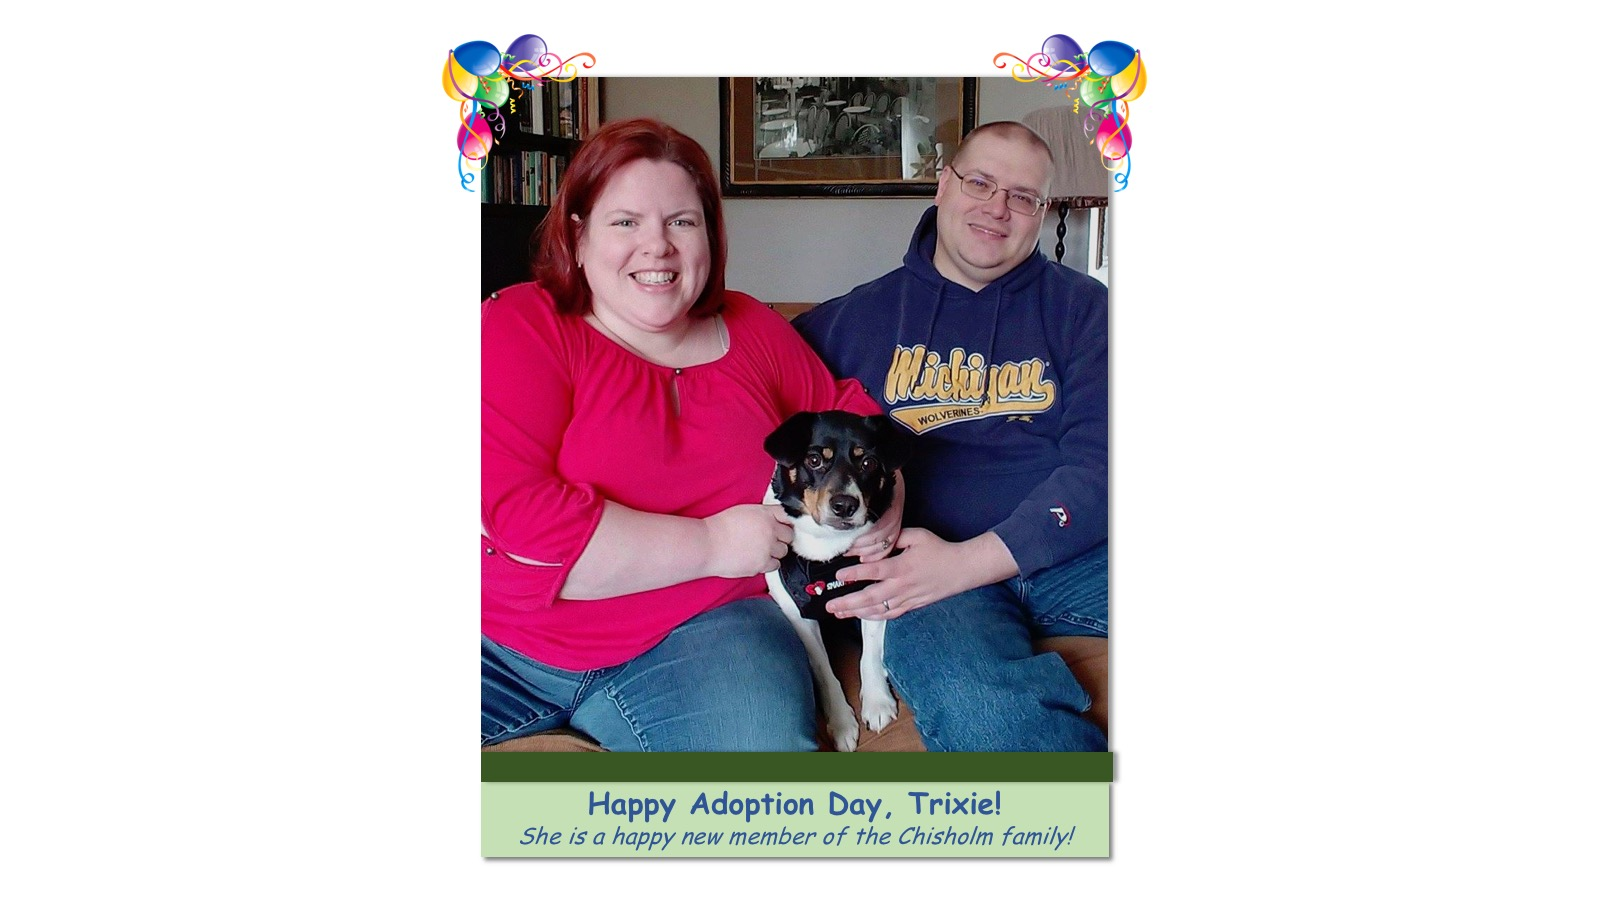 Trixie_Adoption_Photo_2018.jpg